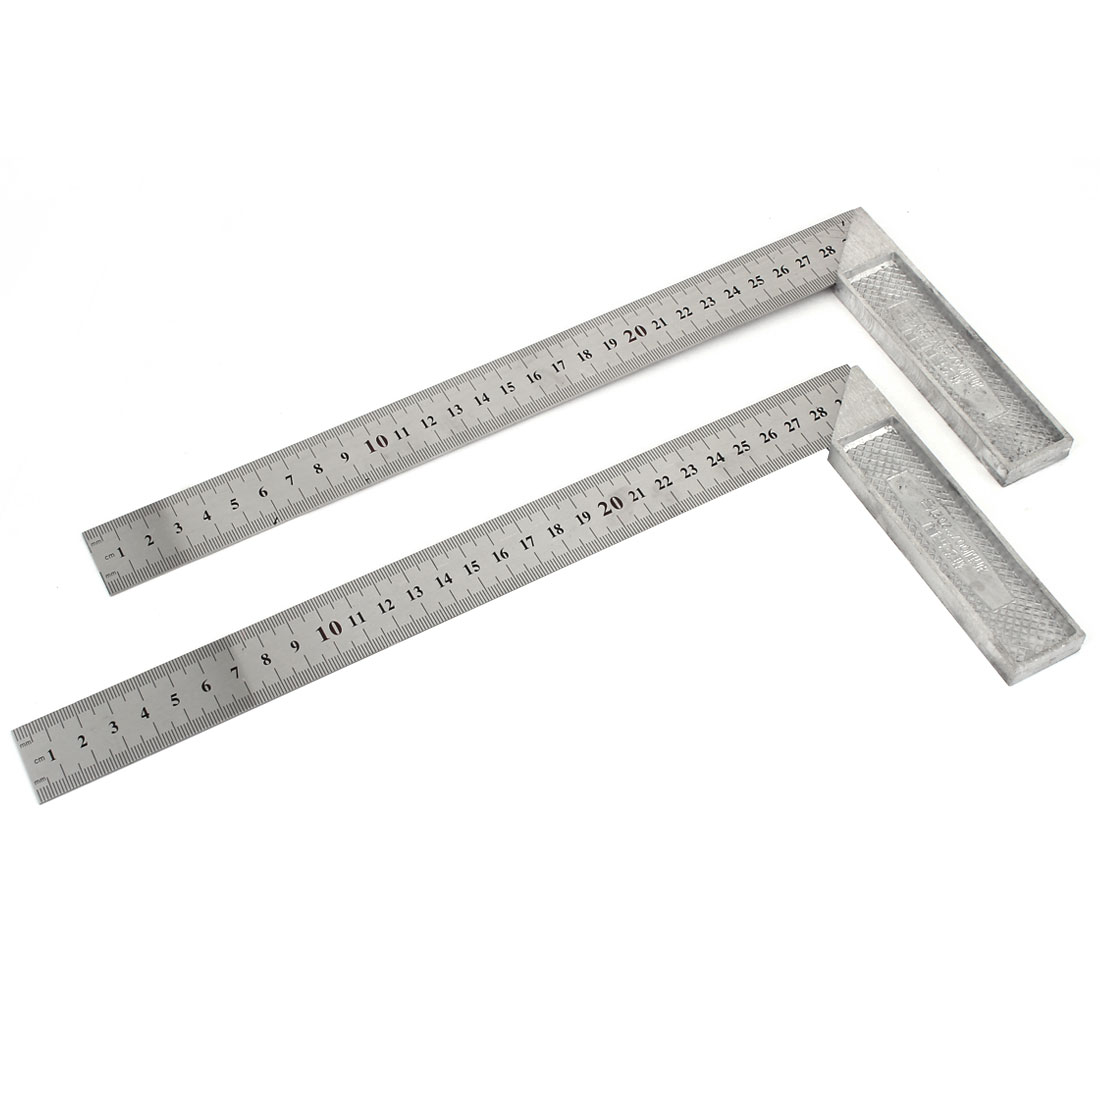 2pcs Right Angle 30cm Scale L Square Ruler Woodworking Tool